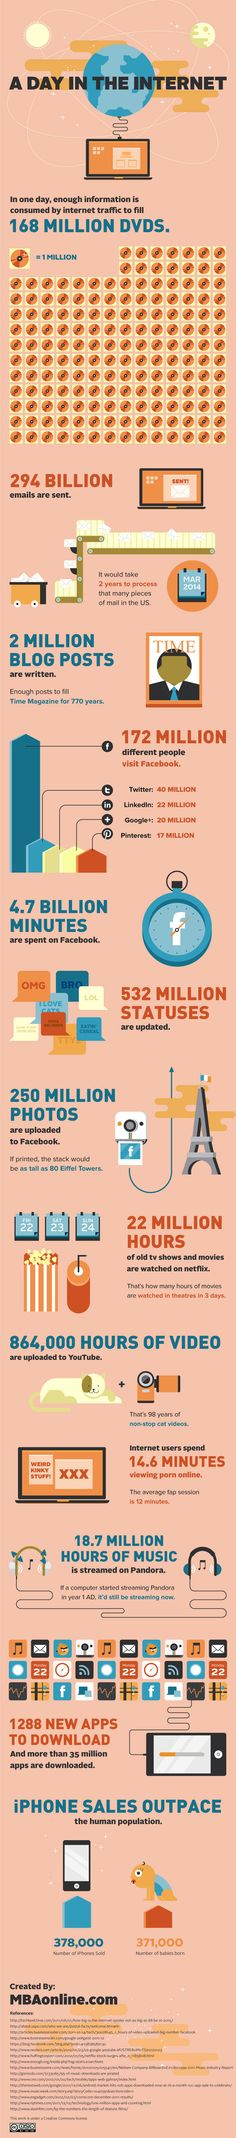 532 Million Status Updates, 864,000 Hours of Video: A Typical Day on the Internet (Infographic)